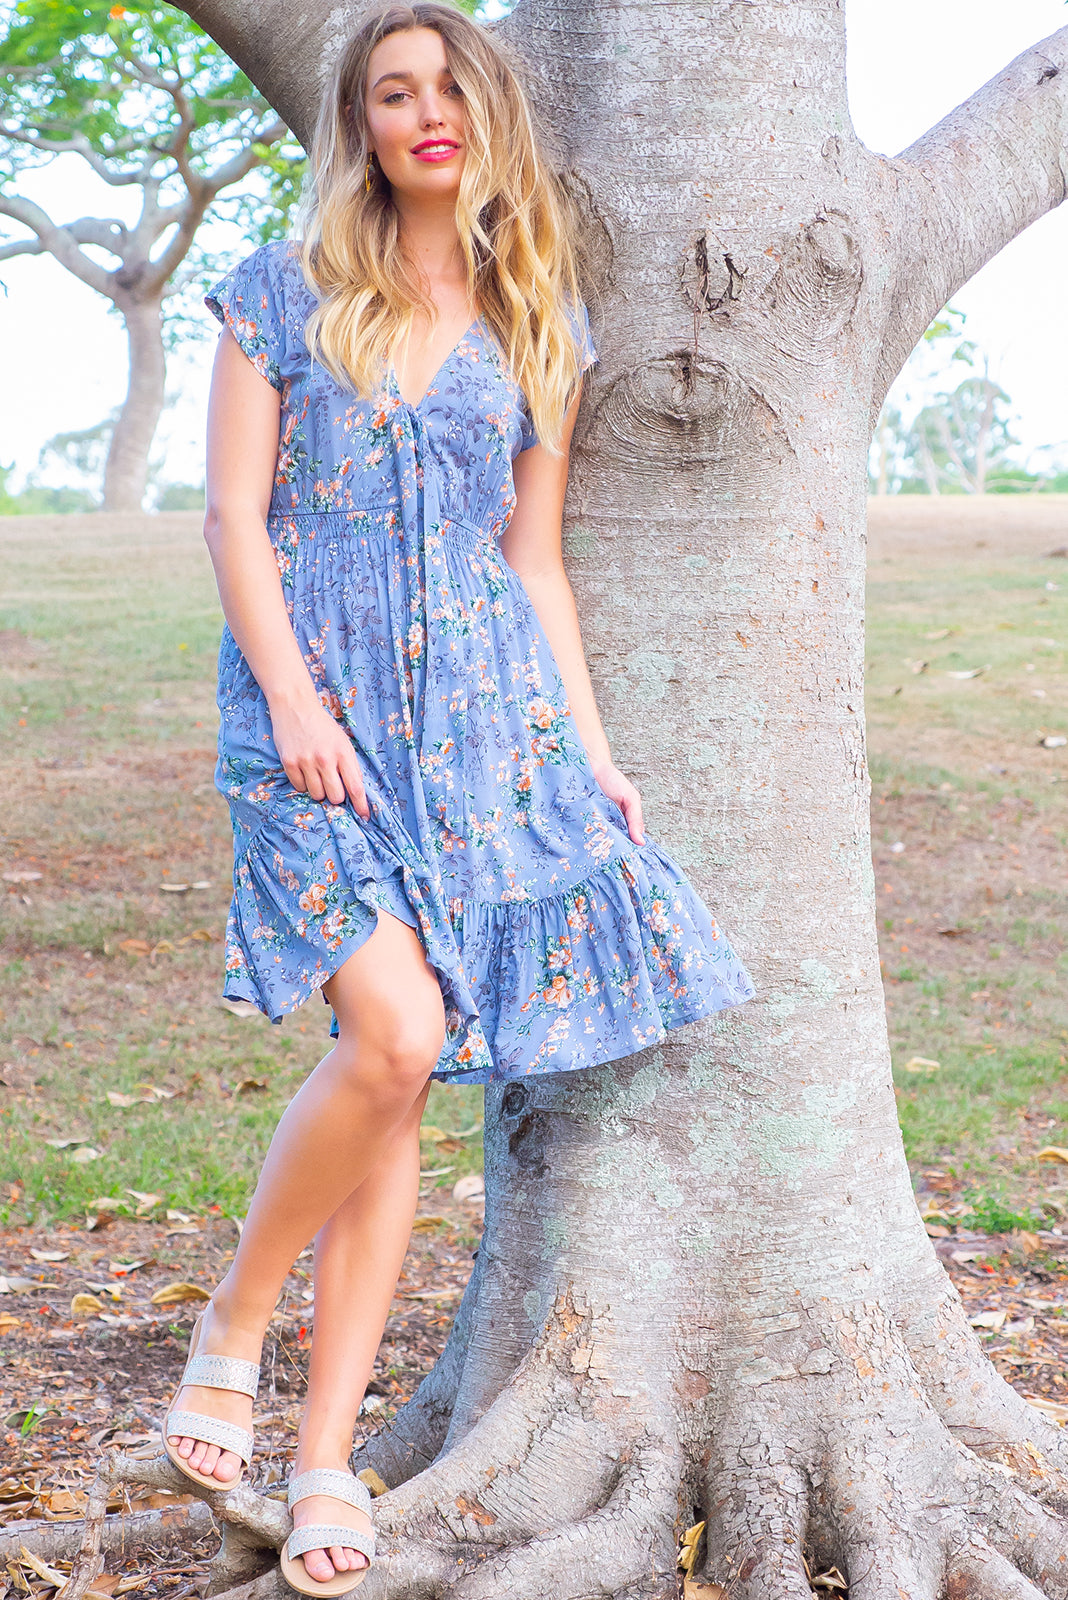 Stella Cornflower Blue Dress Maxi dress features elasticated empire line with a cap sleeve and deep v neck the fabric is a soft woven rayon in a delicate cornflower blue floral print